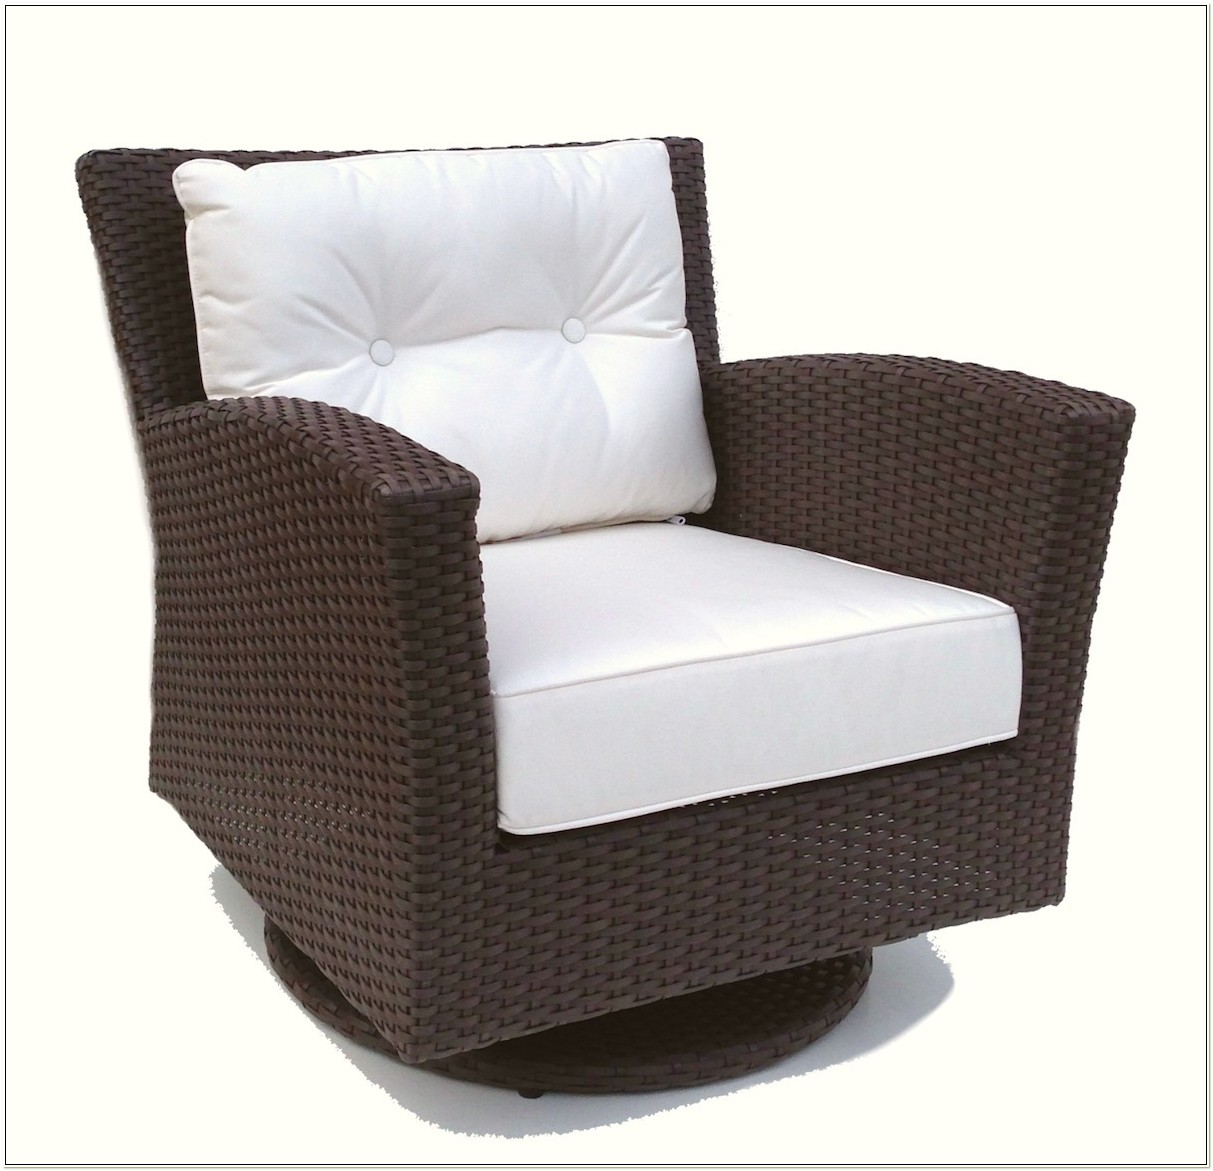 Wicker Swivel Rocker Chair